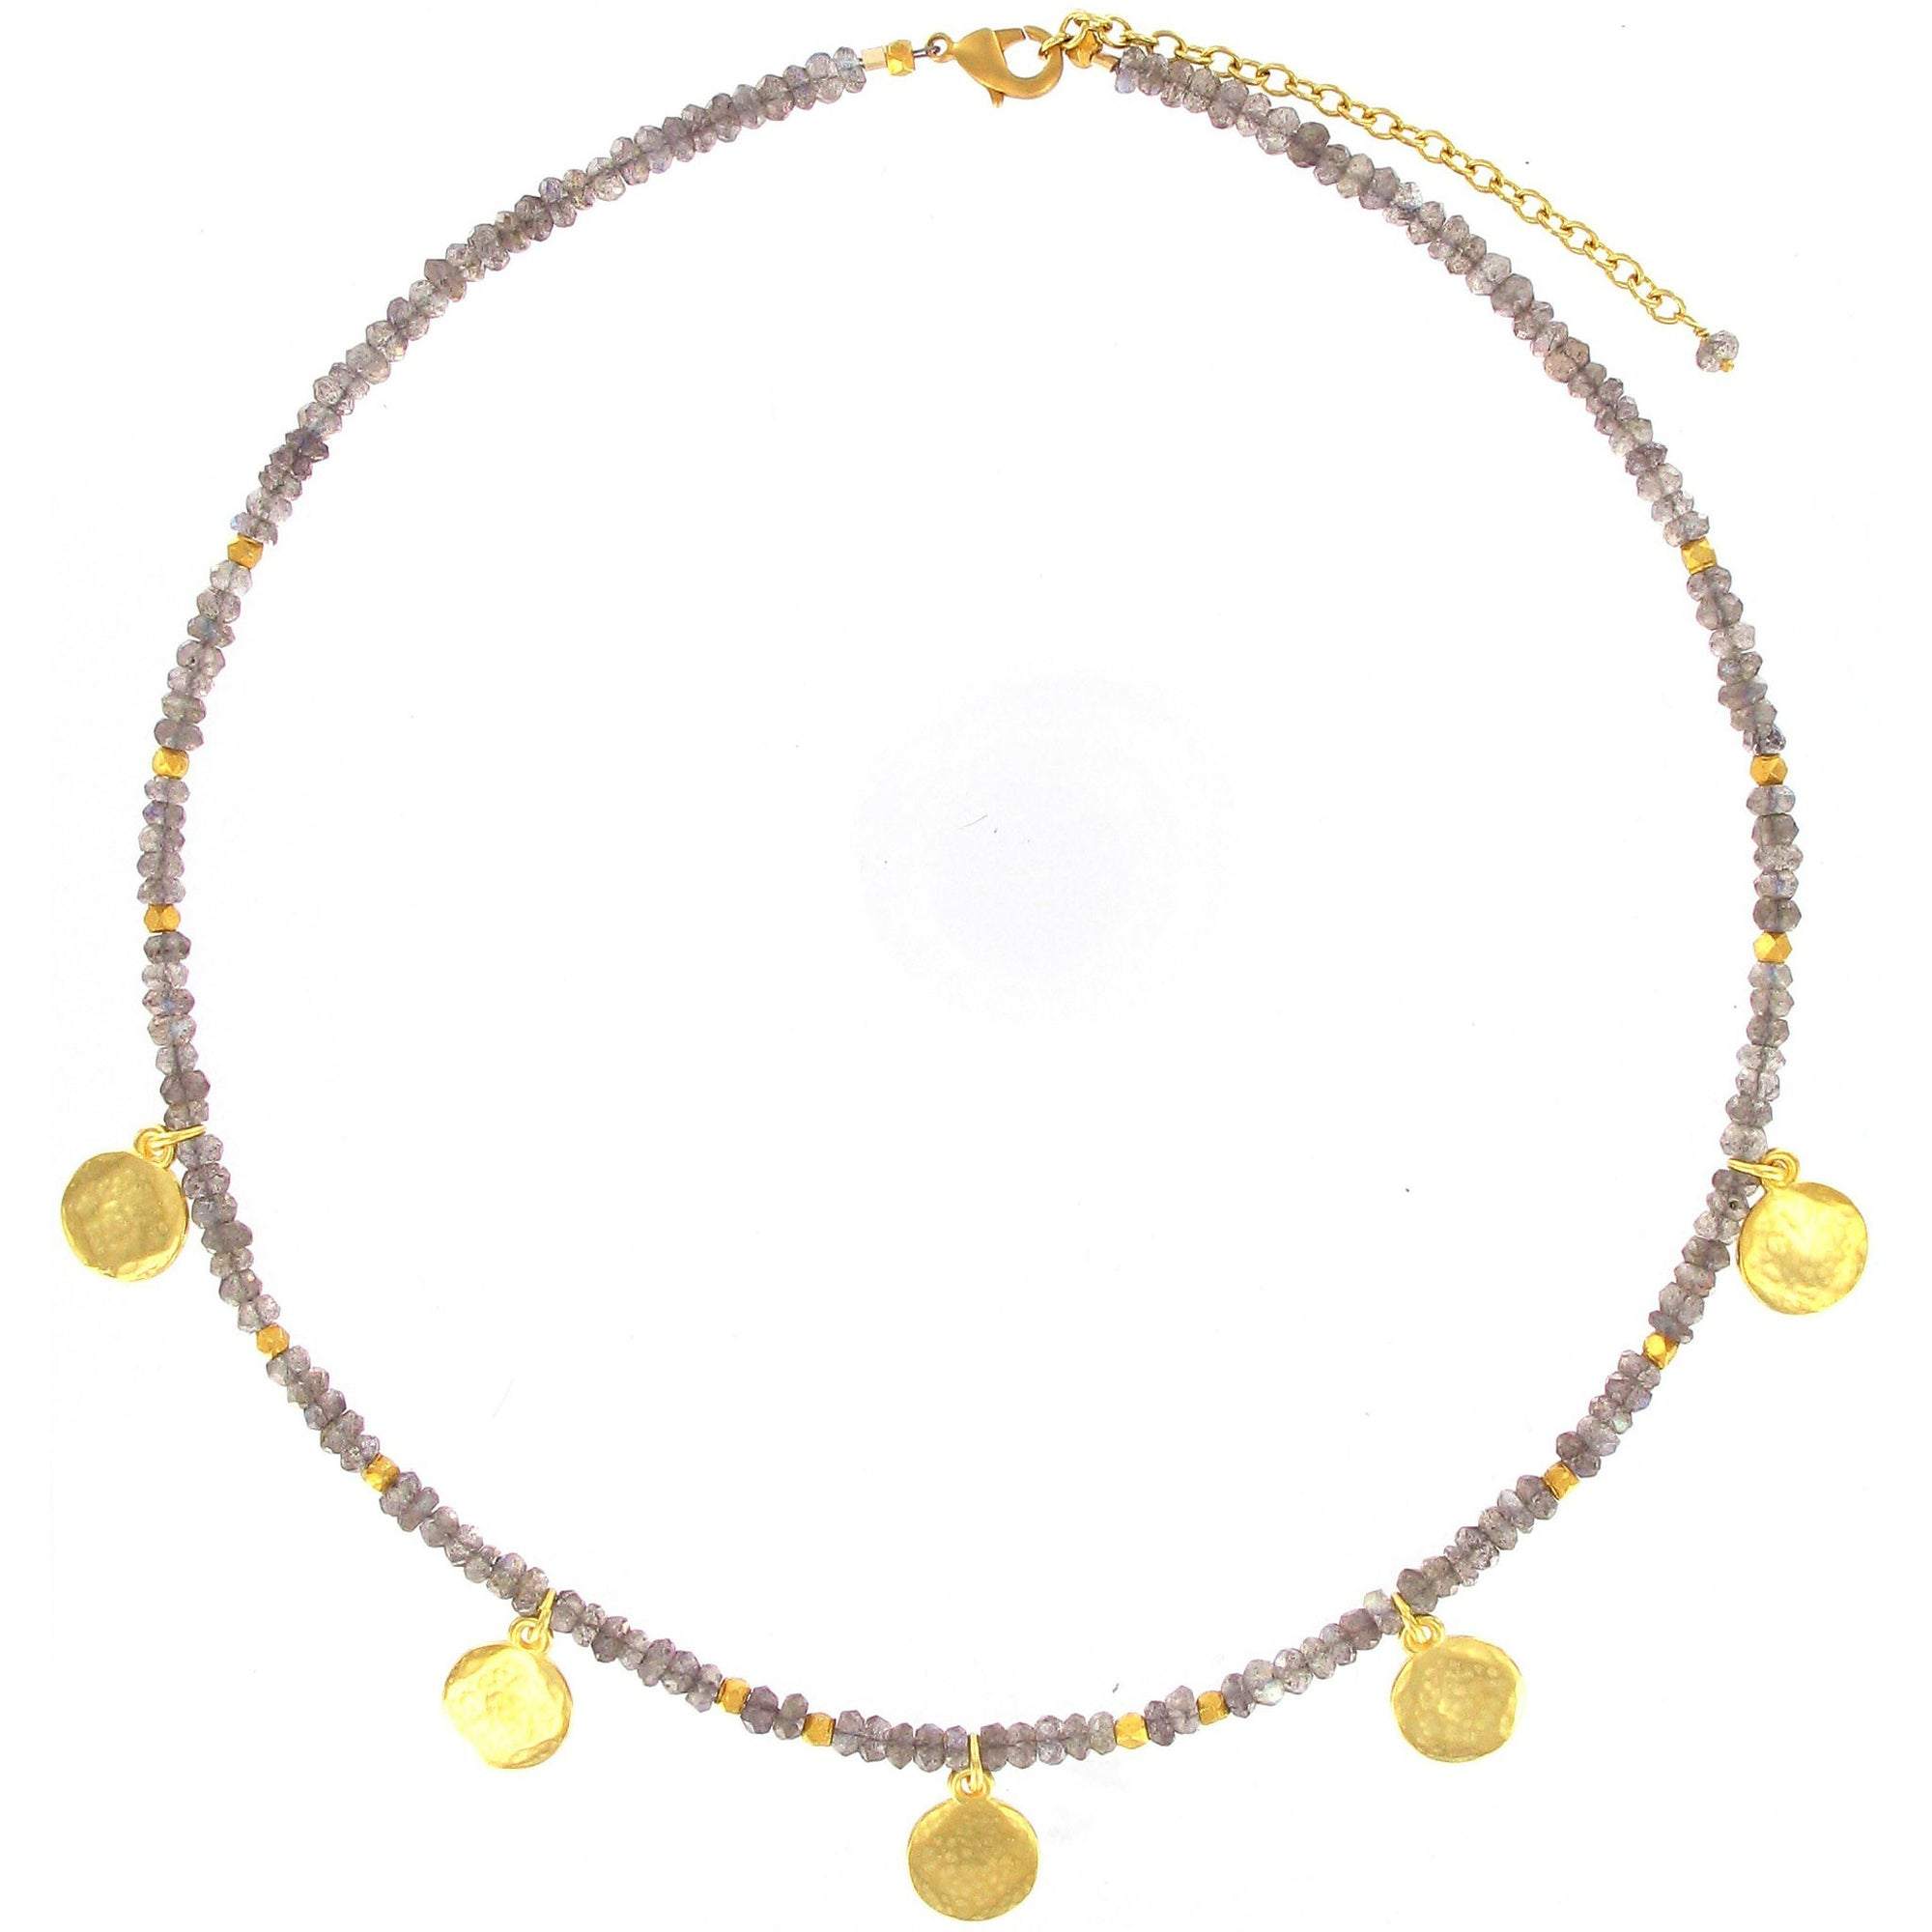 discs hammered necklace on products chain gold shape with coin semiprecious stones